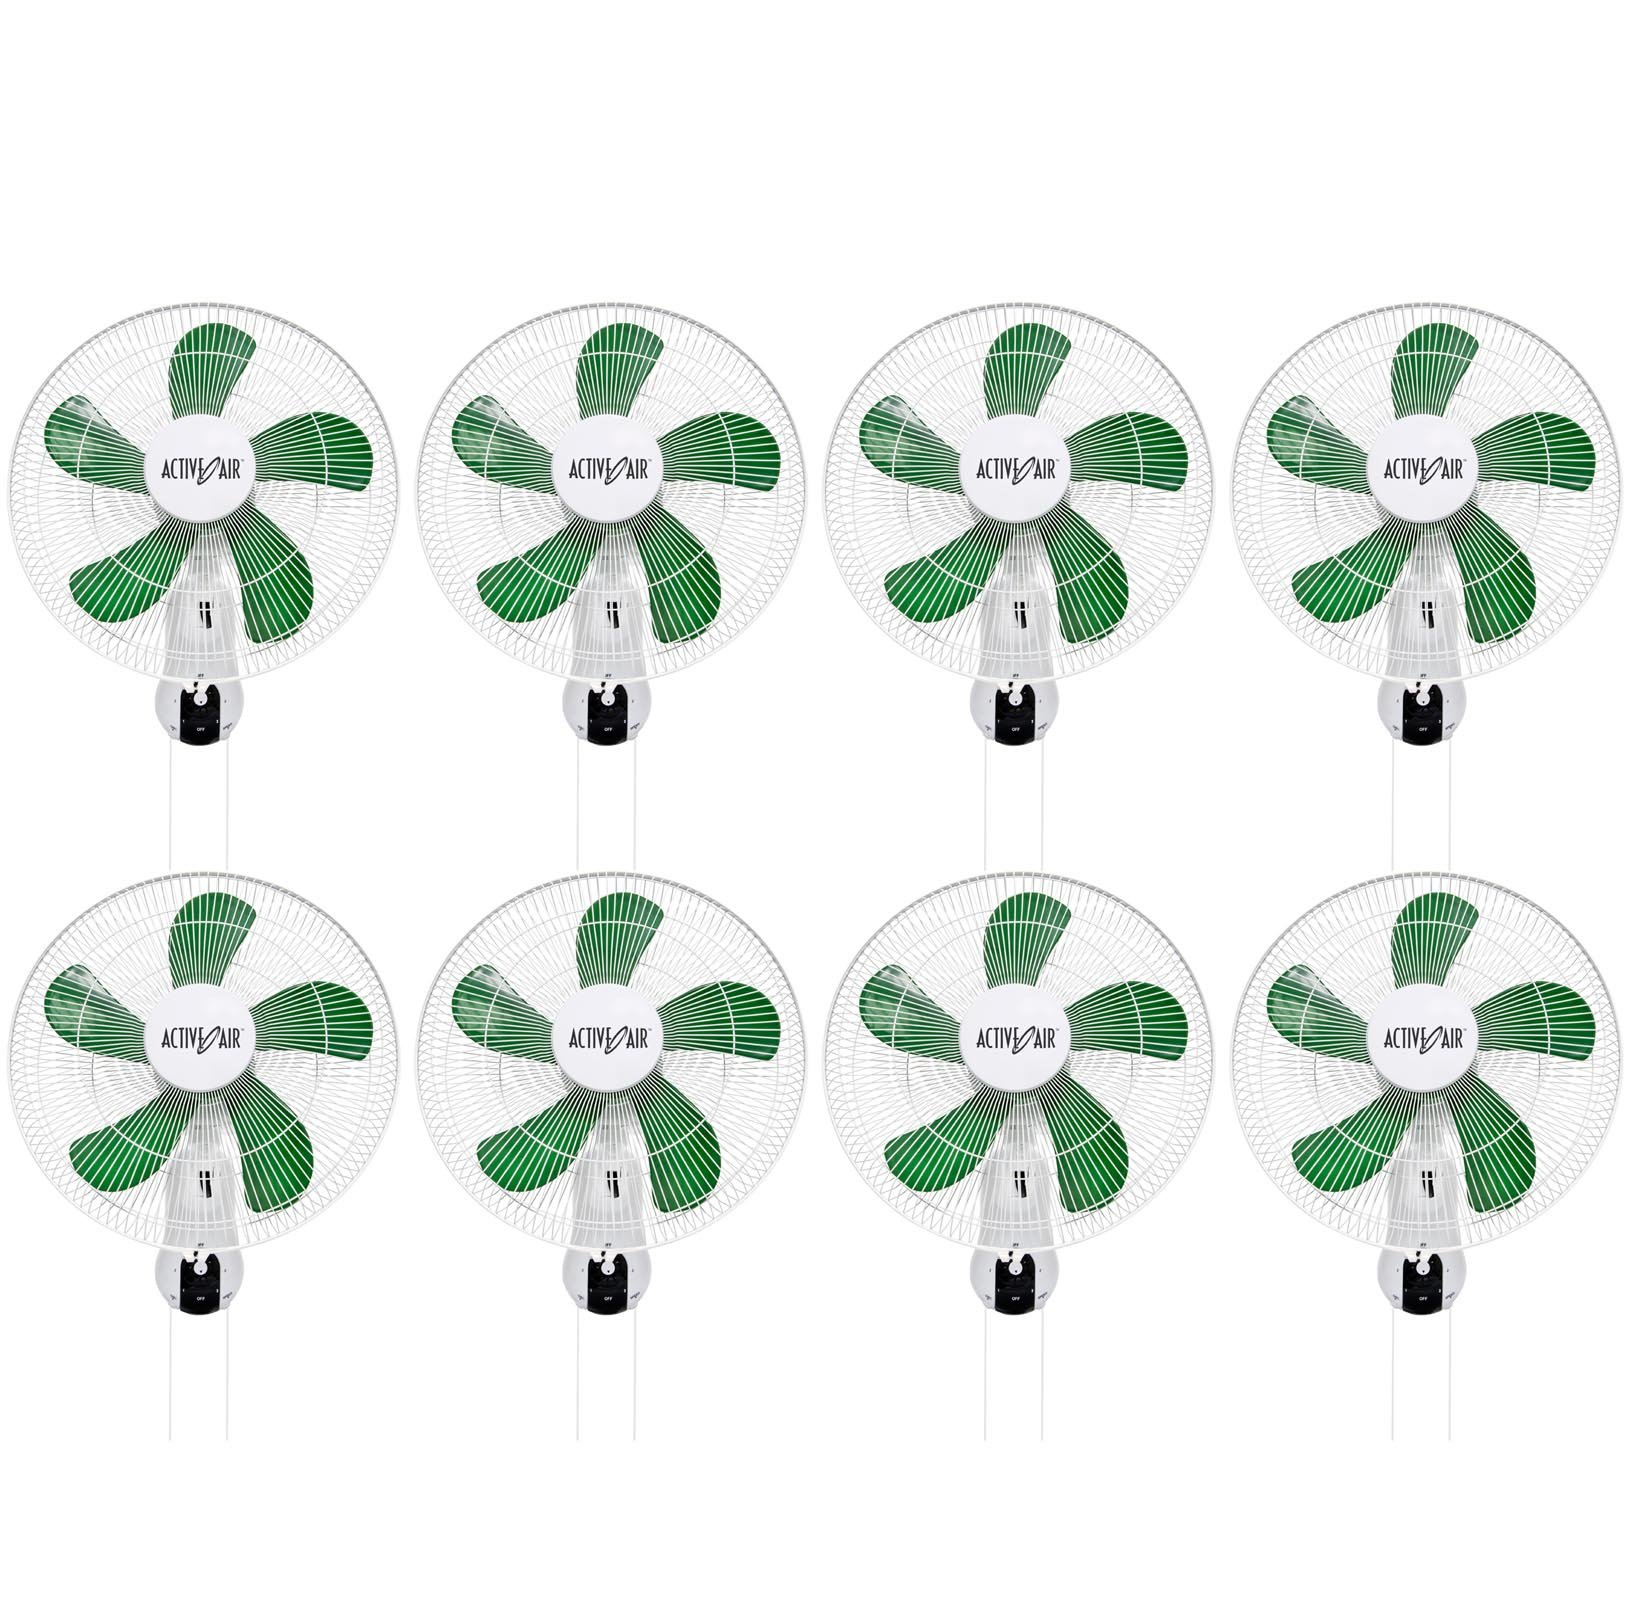 (8) HYDROFARM ACF16 Active Air 16'' Wall Mountable Oscillating Hydroponic Fans by Active Air